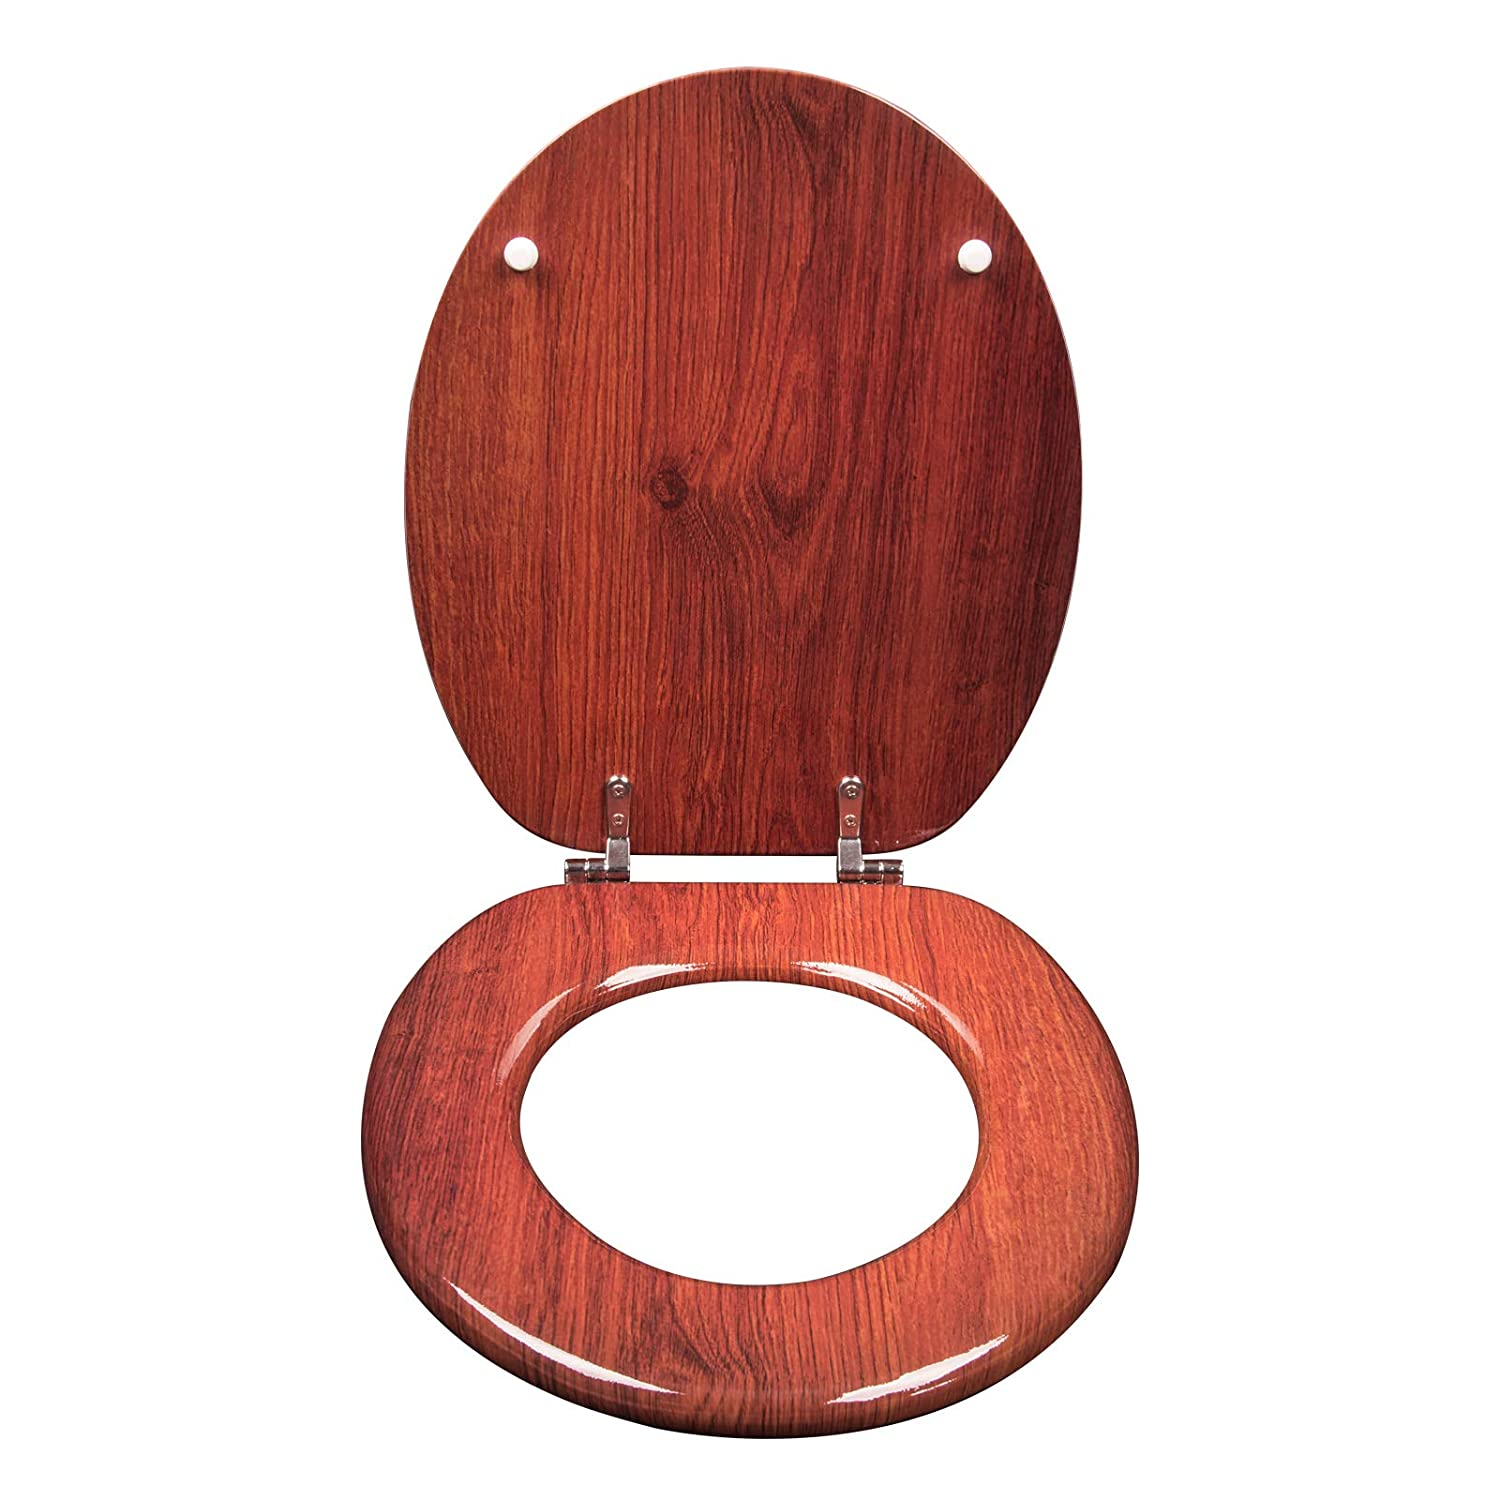 WOLTU Wooden Heavy Duty Toilet Seat Adjustanle Hinge Toilet Lid Cover with Fittings and Fixtures Universal Commercial Pans Seat for Bathroom